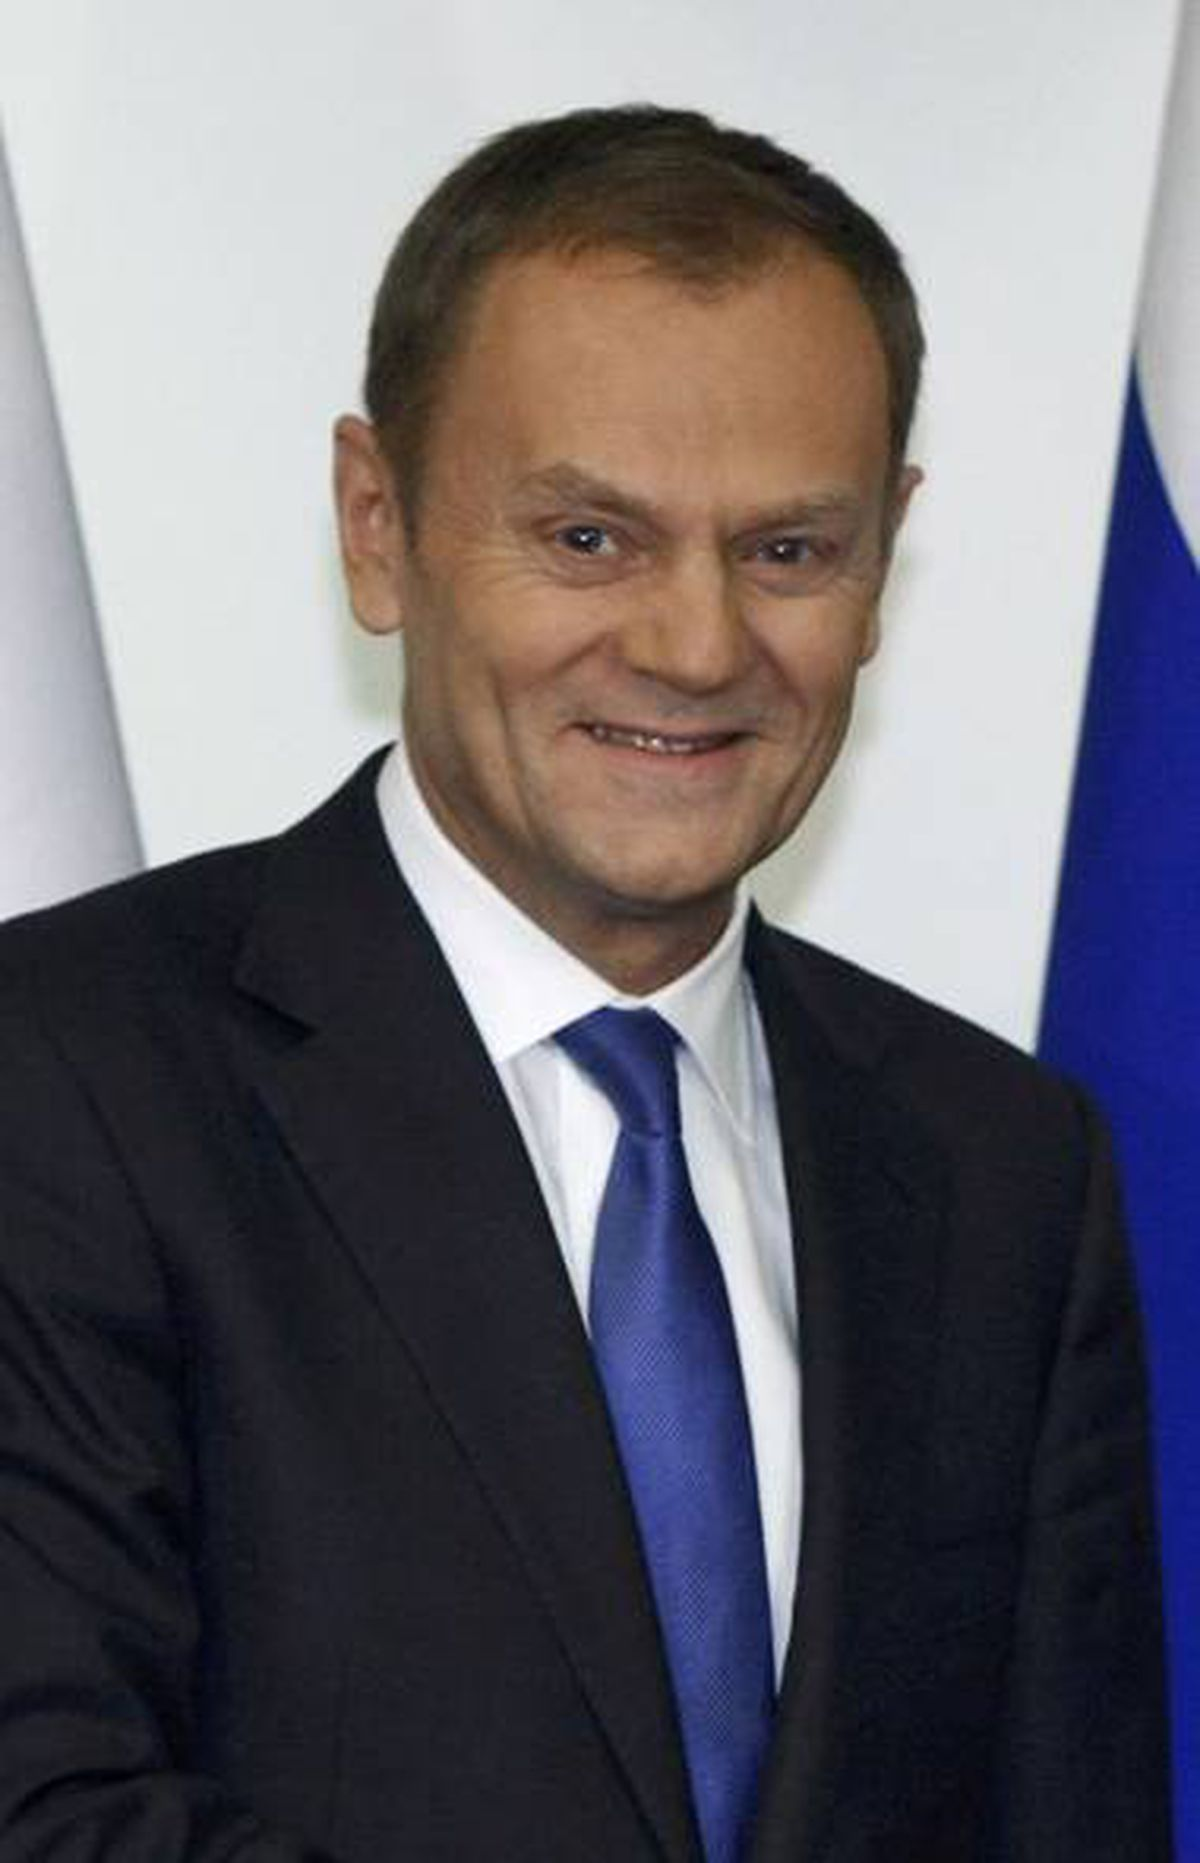 """POLAND: When Poland learned in 2008 that the U.S. would not be giving it operational Patriot missiles to bolster its defences, one minister dismissed what his nation would be getting instead as """"potted plants,"""" according to a diplomatic cable. Donald Tusk, Poland's prime minister, recently responded by saying that the American negotiating tactics described in the cable left Poland """"stripped of all illusions"""" about the way the United States deals with even its closest allies. The document refers to U.S.-Polish talks ahead of the establishment of a military base in Poland in May where U.S. soldiers are now training the Polish military to use Patriot missiles – but without the real weapons."""